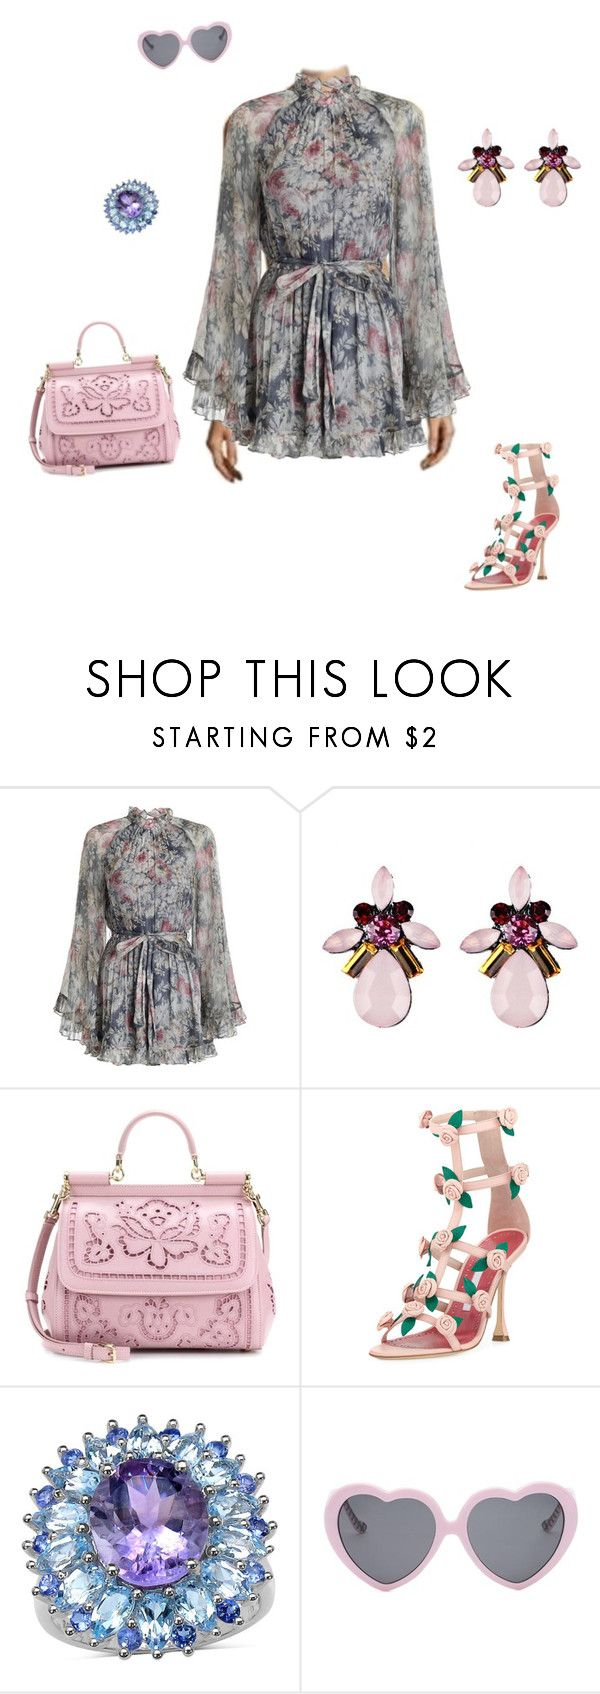 """""""Festival 2017"""" by littlerosebunny ❤ liked on Polyvore featuring Timo Weiland, Zimmermann, Dolce&Gabbana, Manolo Blahnik, Vans, Summer, festival, jumpsuit, fahsion and 2017"""